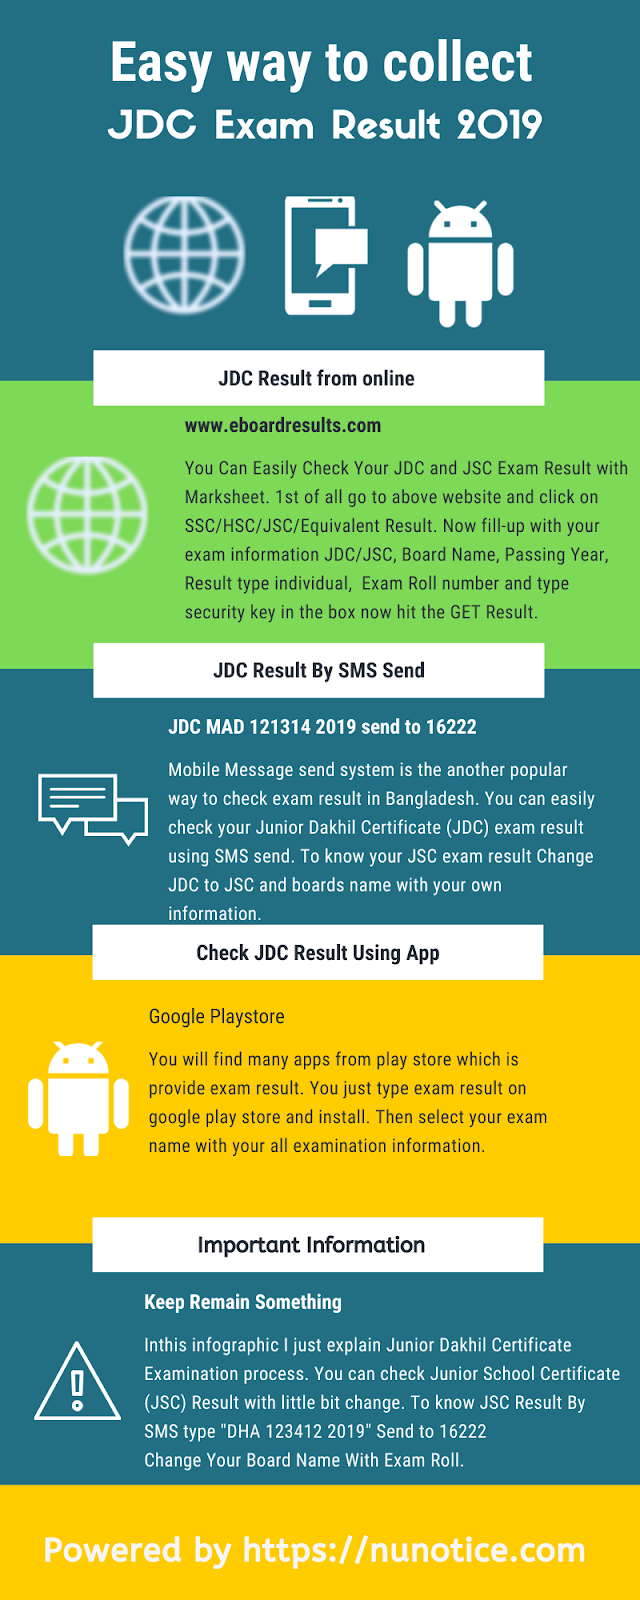 JDC result infographic image